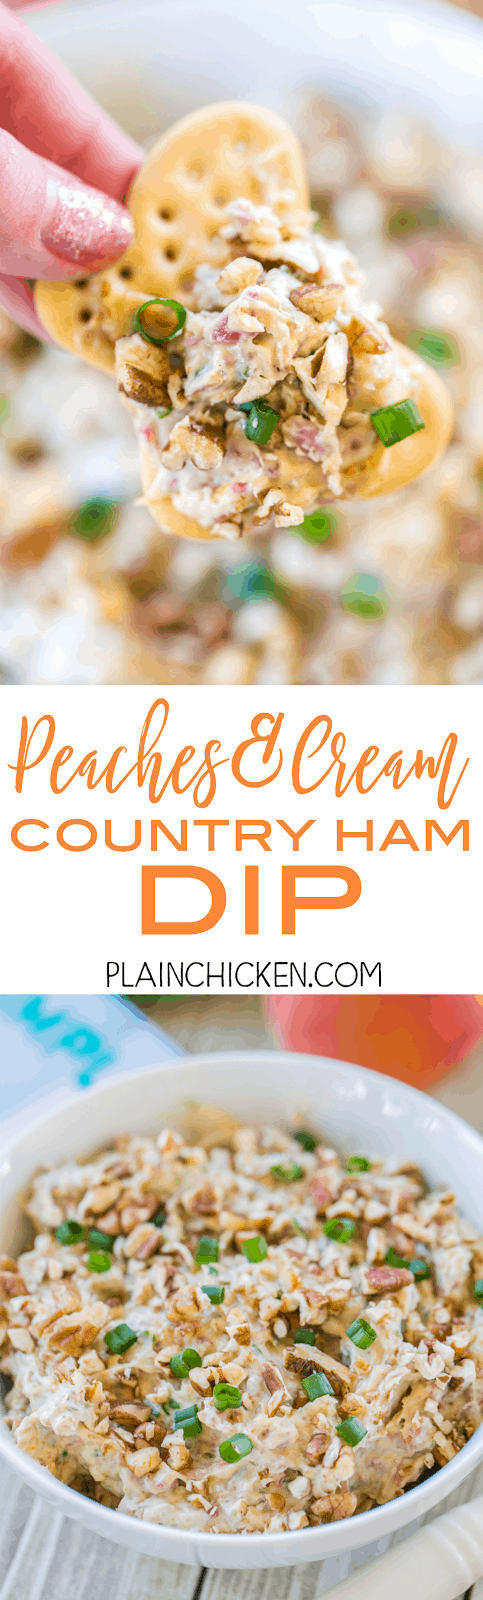 Peaches and Cream Country Ham Dip - so easy to make and it tastes great! Only 6 ingredients! Cream cheese, country ham, dijon mustard, green onions, peach preserves, pecans. Dump everything in the food processor and pulse. Serve with crackers and/or celery. It is always a hit at parties!! Quick, easy, delicious dip recipe.